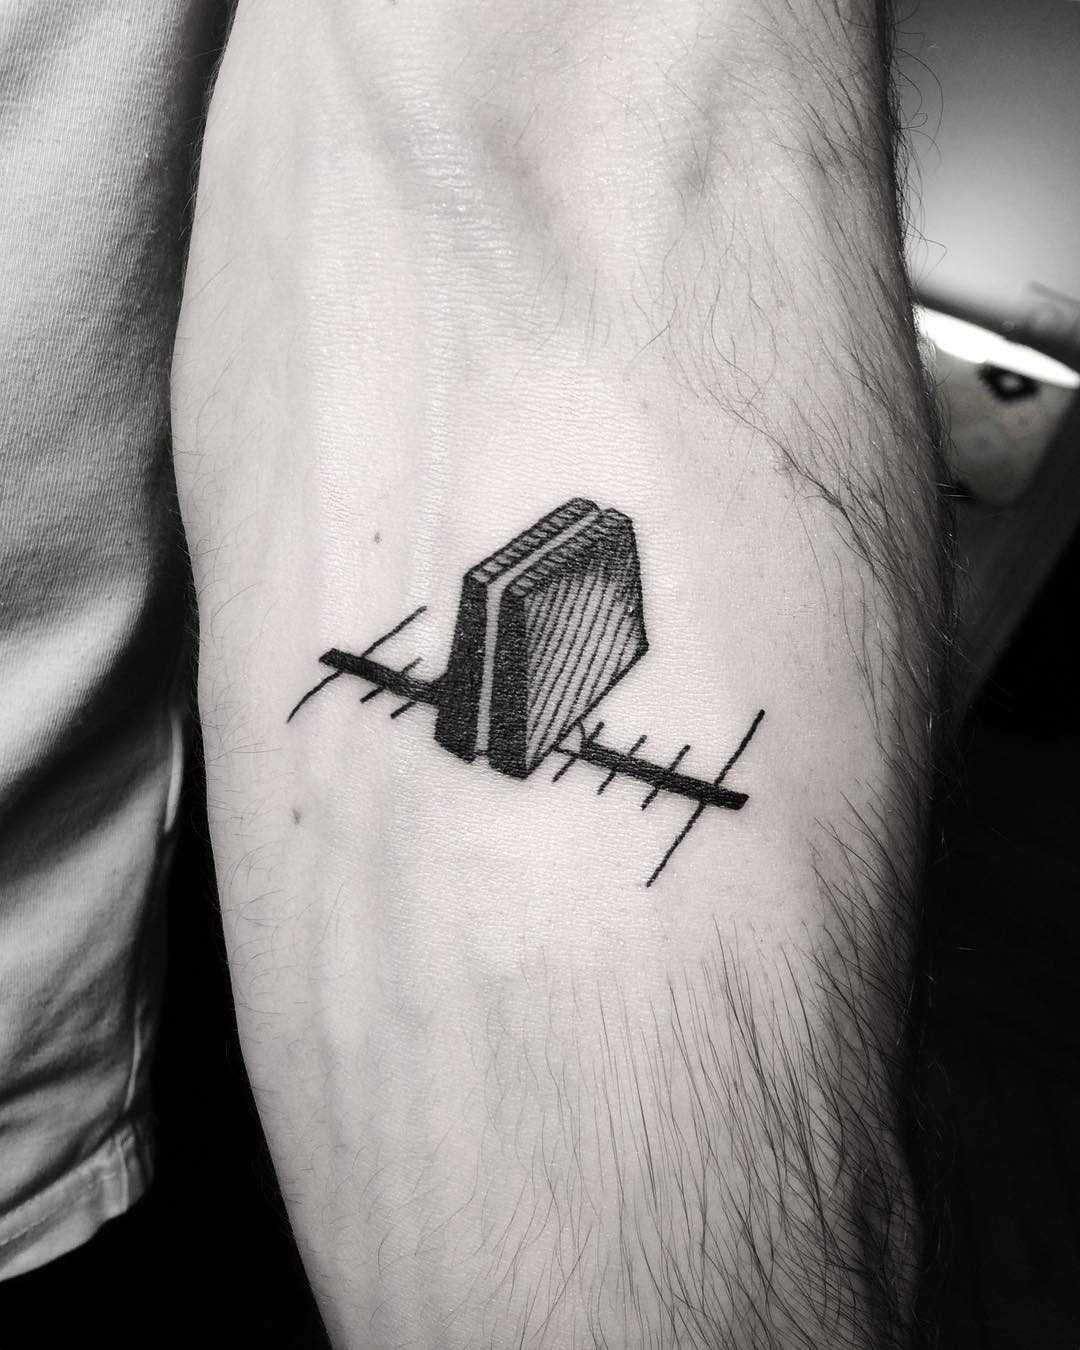 Crossfader tattoo inked on the left forearm | < Minimal